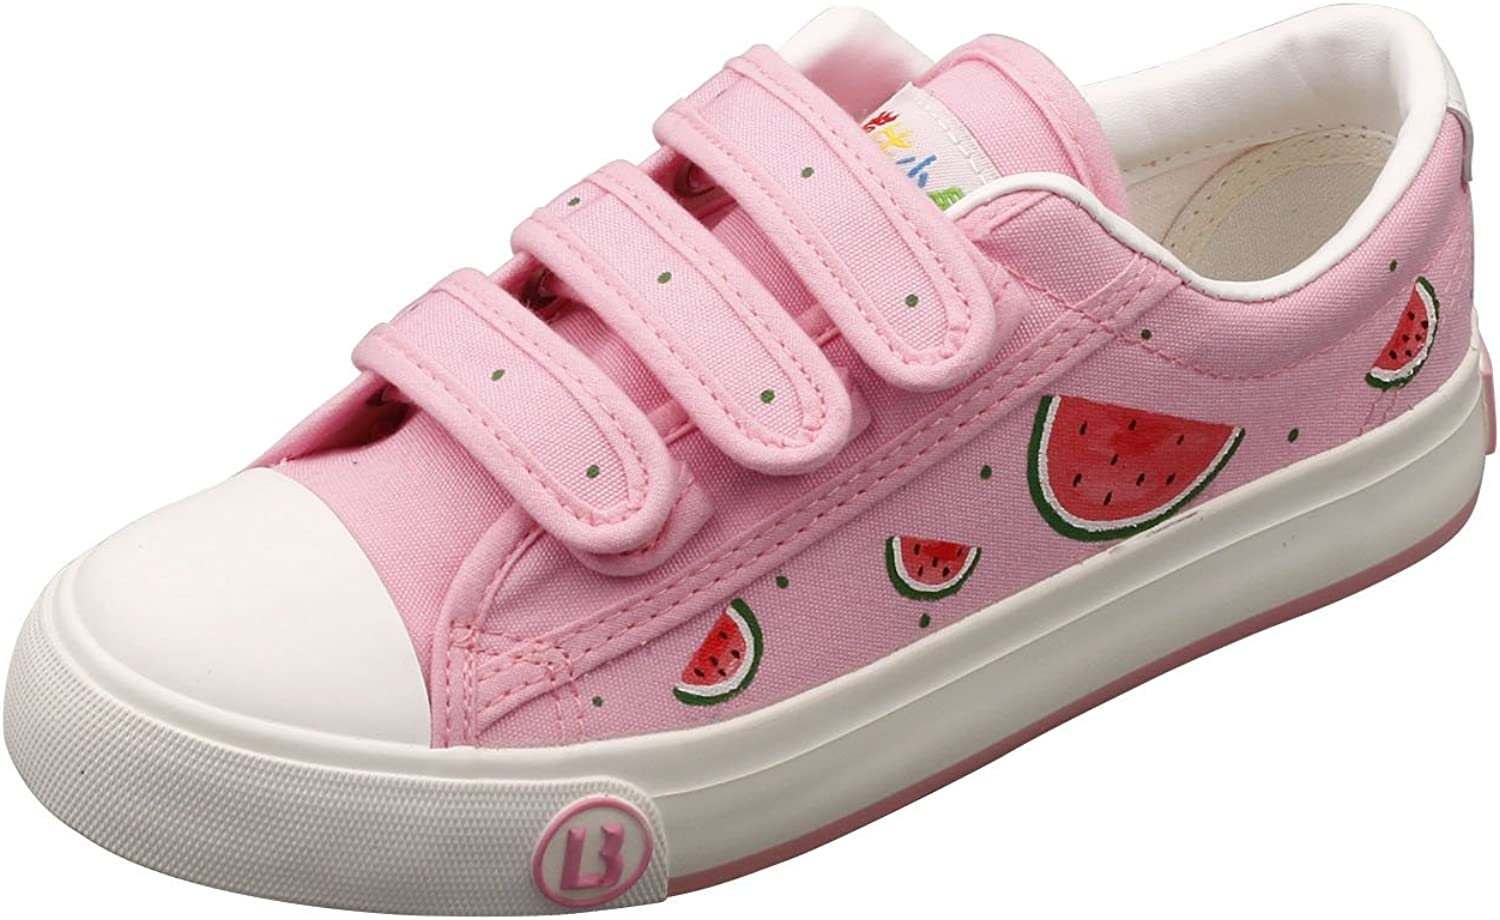 E-LOV Pink Watermelon Hand-Painted Canvas shoes Low Cut Sneakers Hook and Loop Strap Personalized Casual shoes for Women and Men